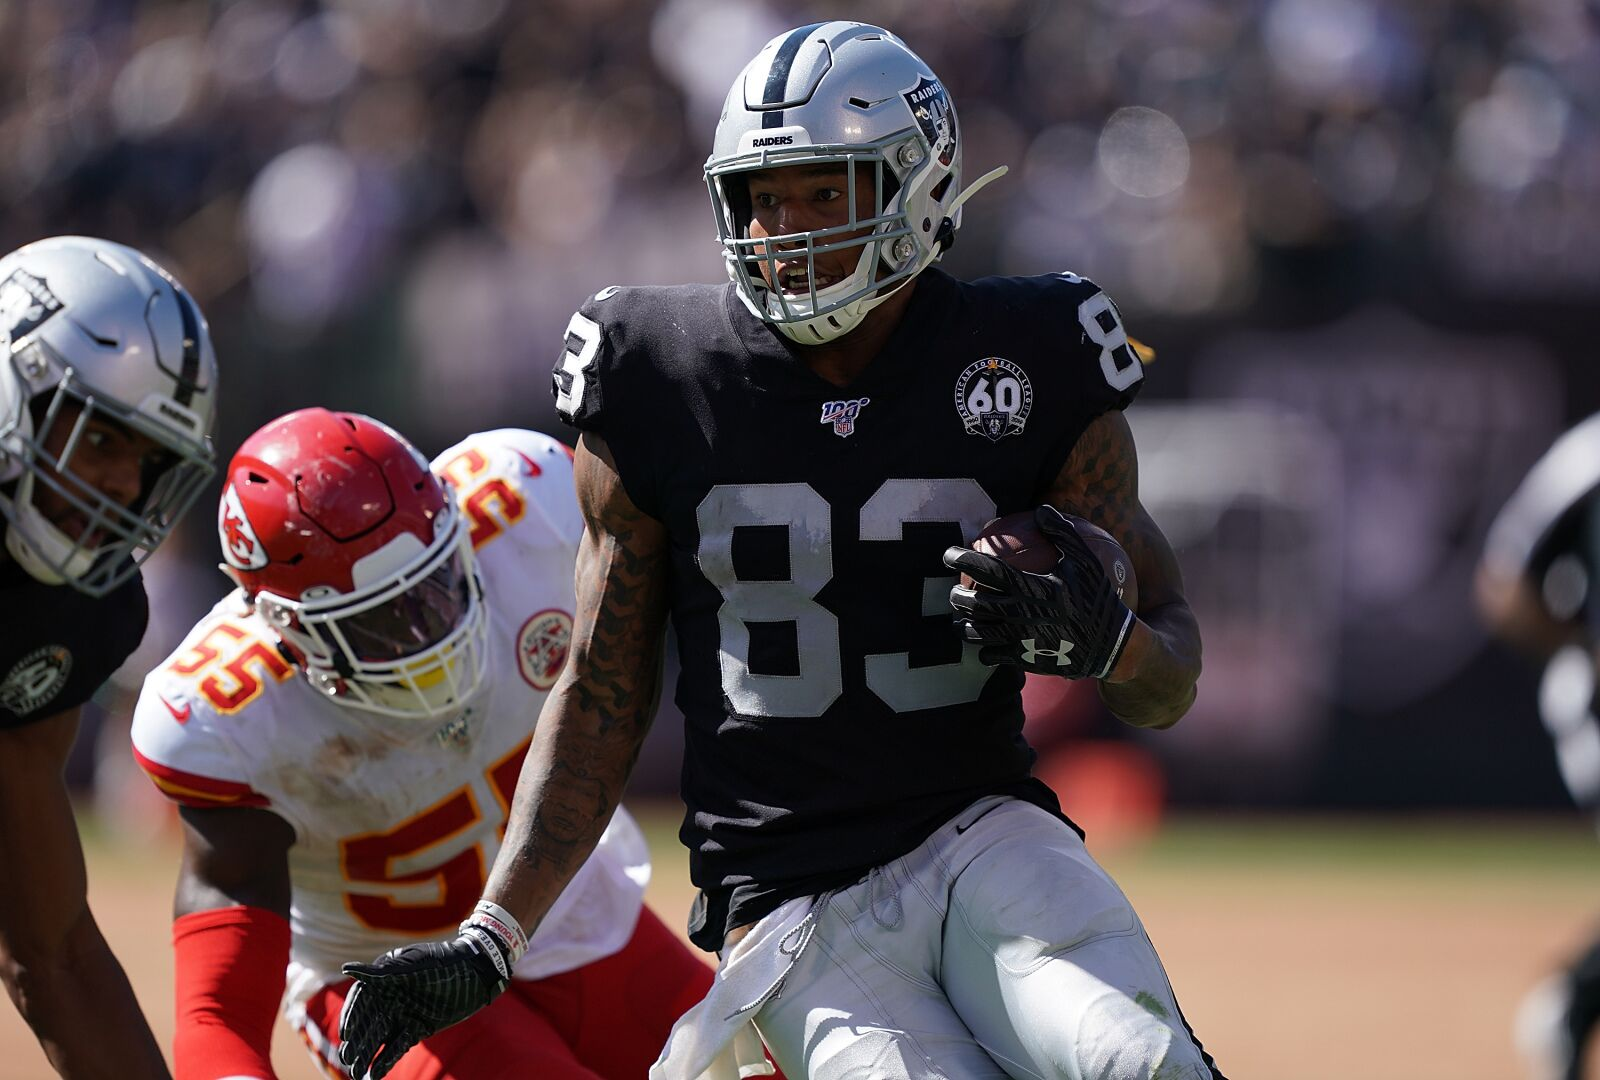 Oakland Raiders must find Darren Waller early and often